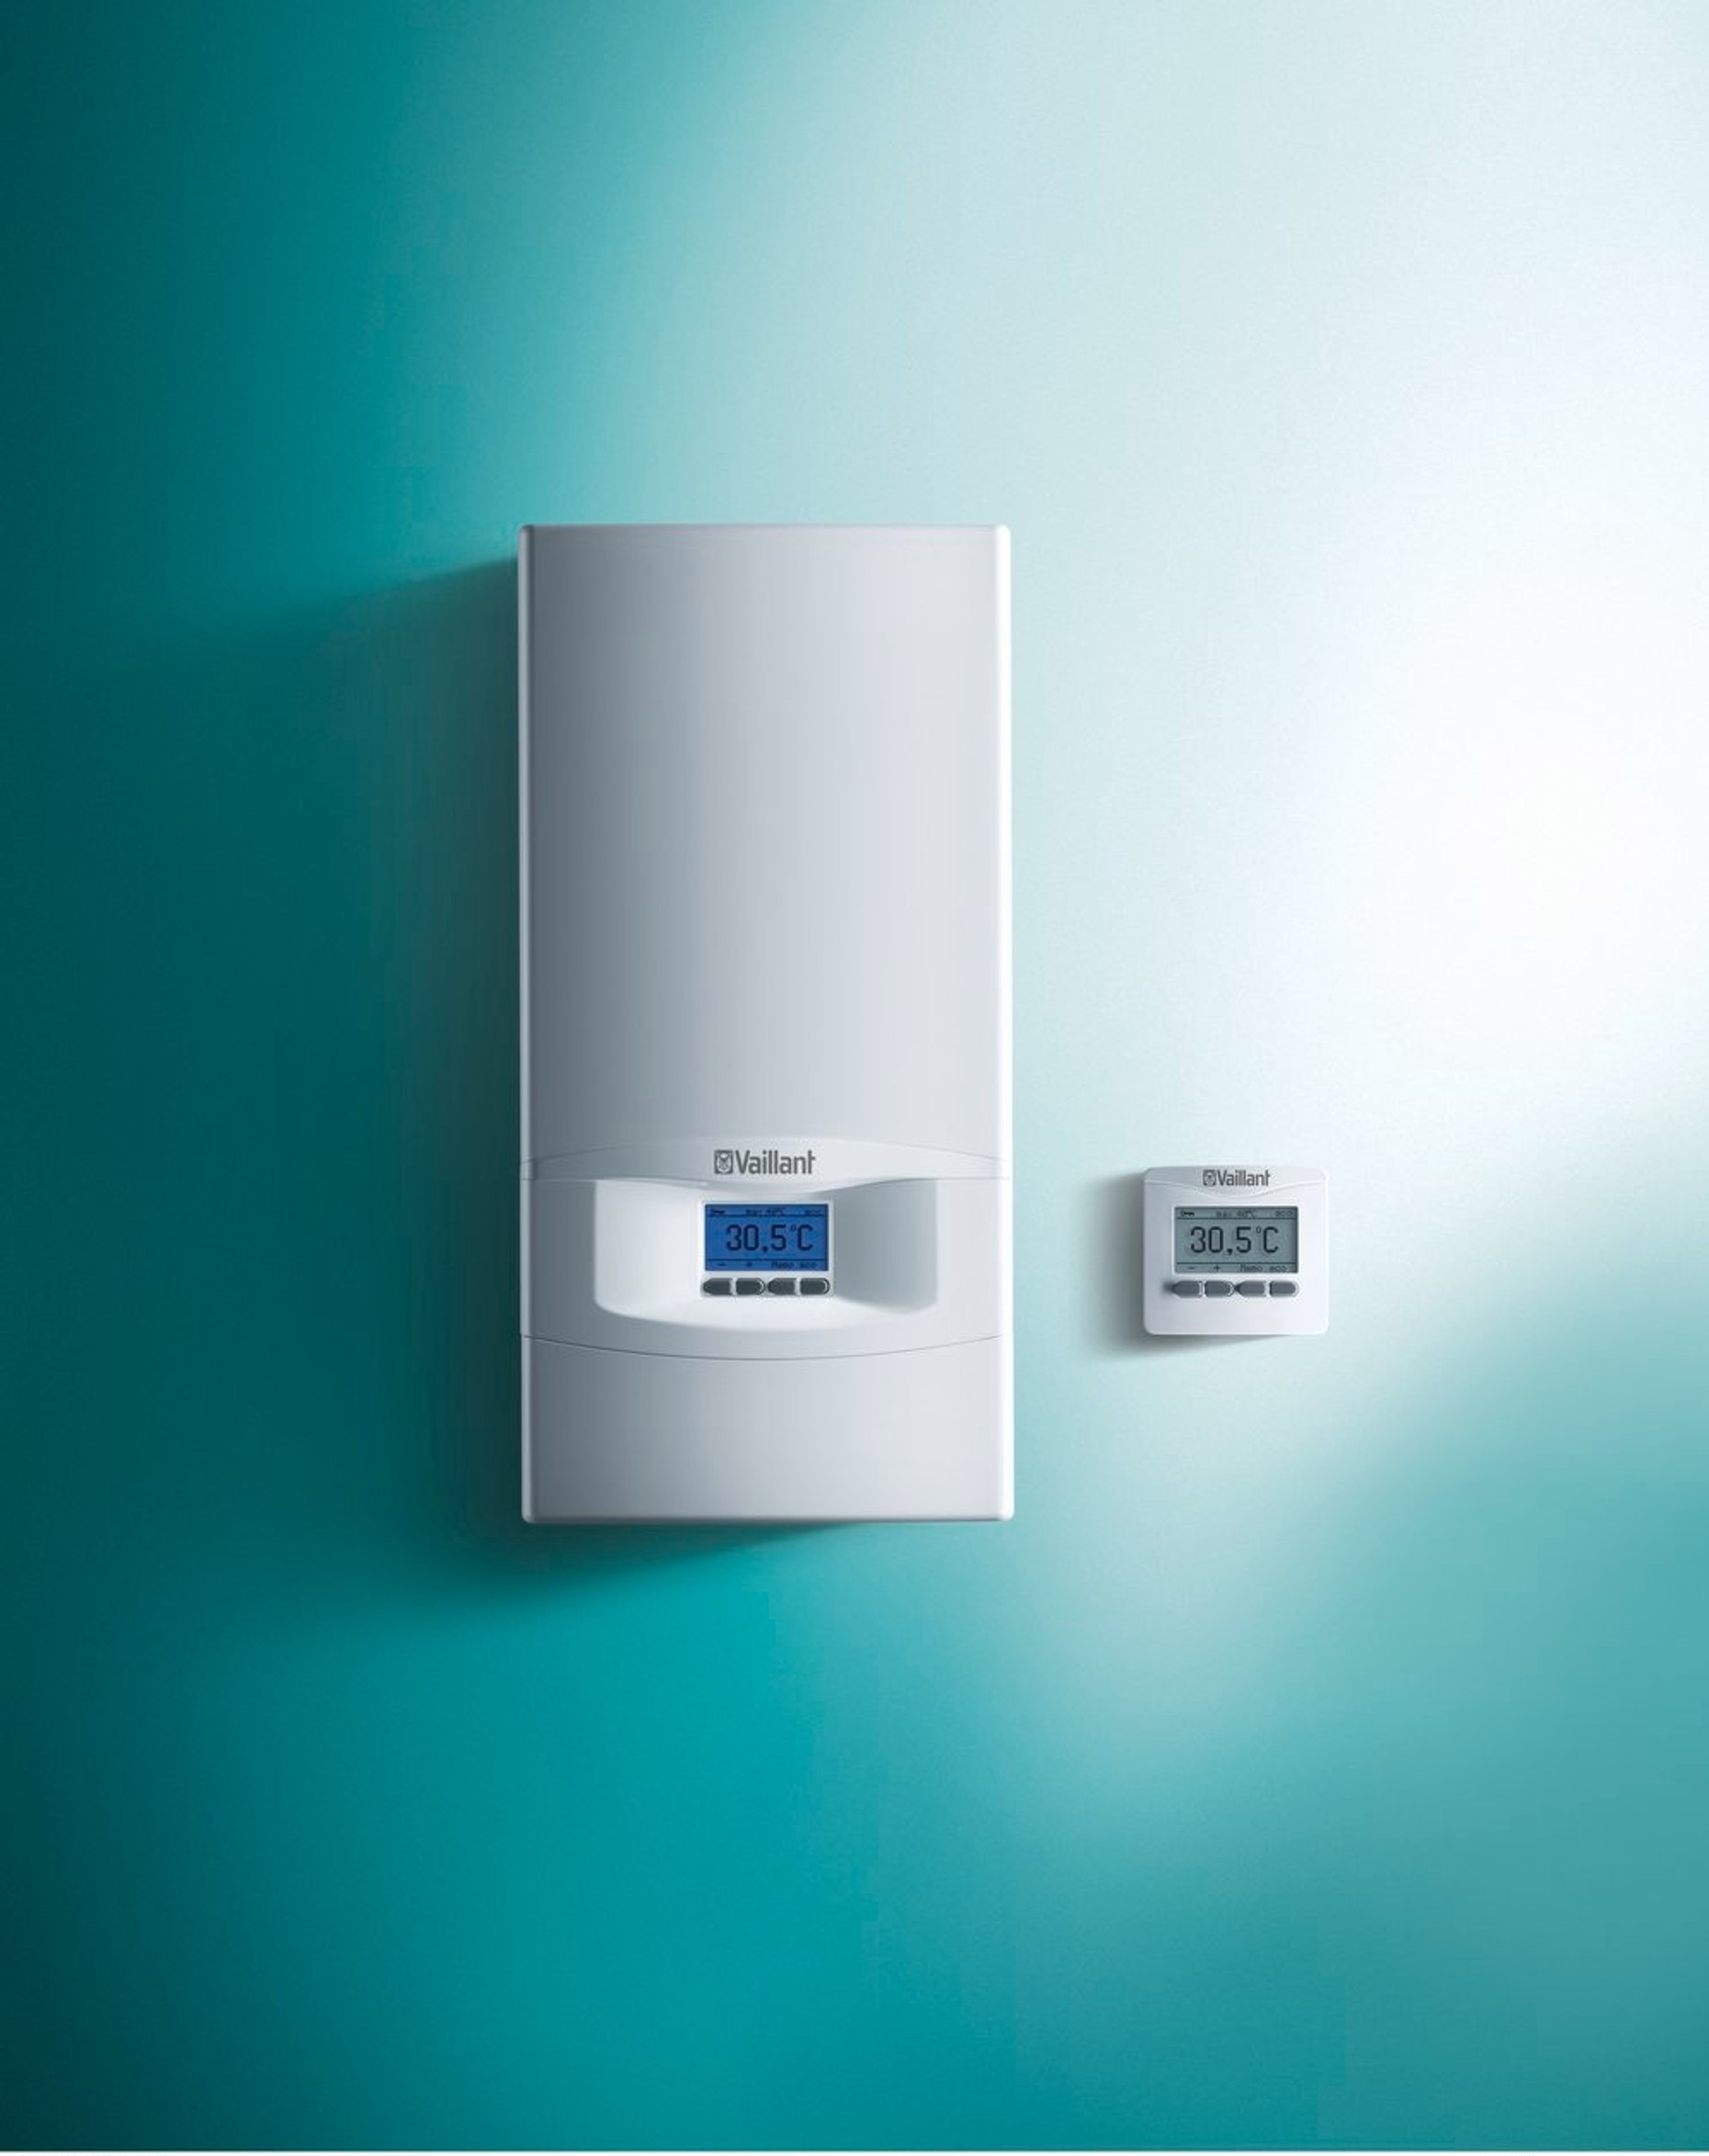 Durchlauferhitzer electronicVED exclusiv - Infos | Vaillant